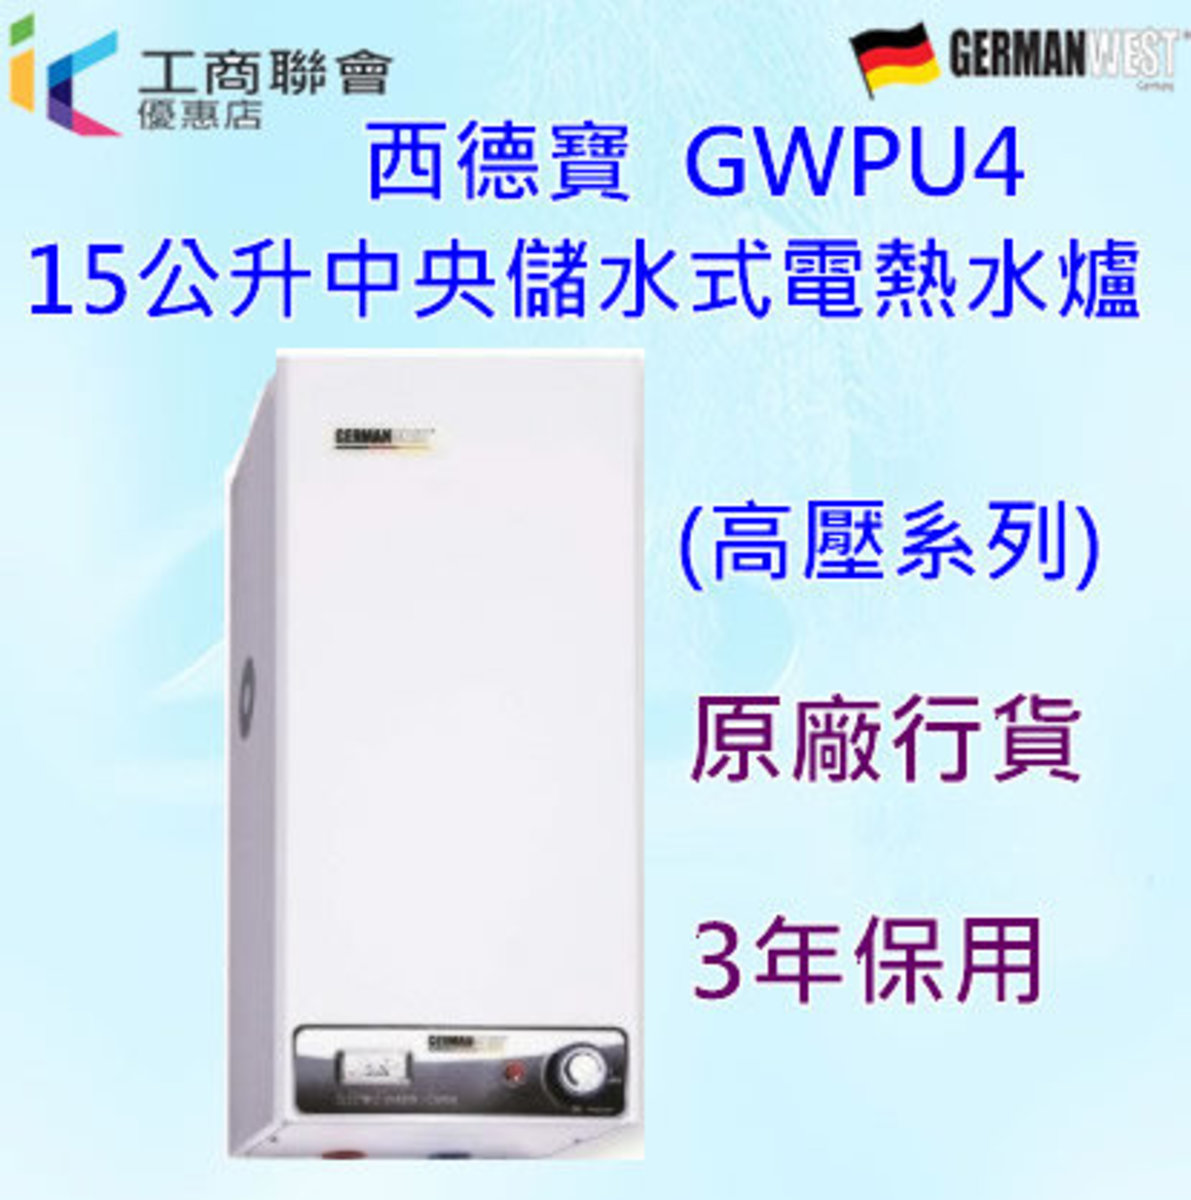 German West GWPU4 15 liters central storage electric water heater